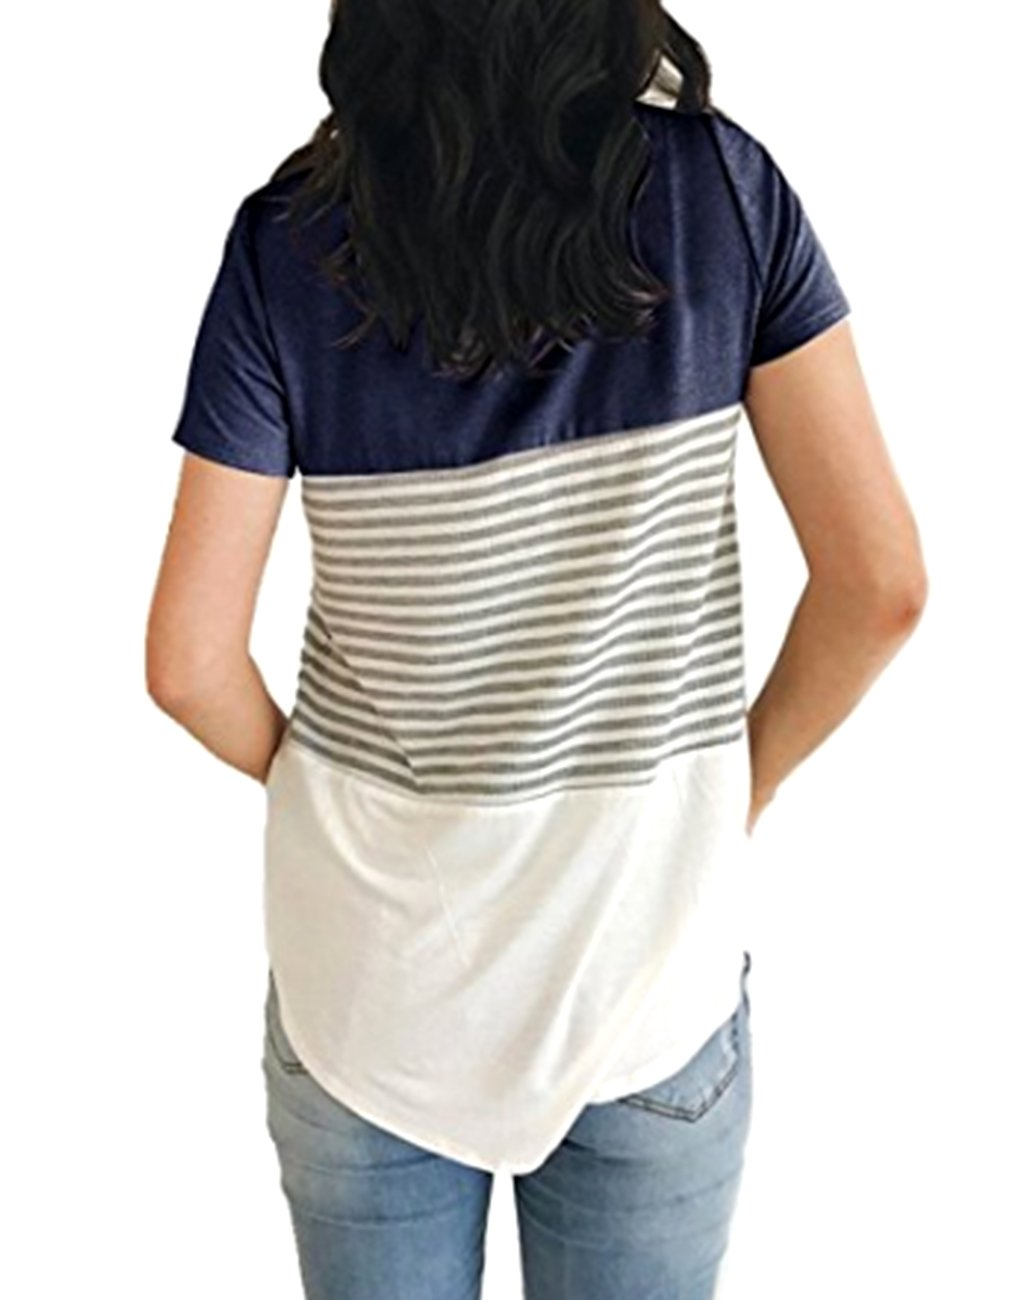 Miskely Women's Summer Short Sleeve Striped Blouse Junior Casual Tunic Tops T-Shirt (Small, Navy Blue) by Miskely (Image #2)